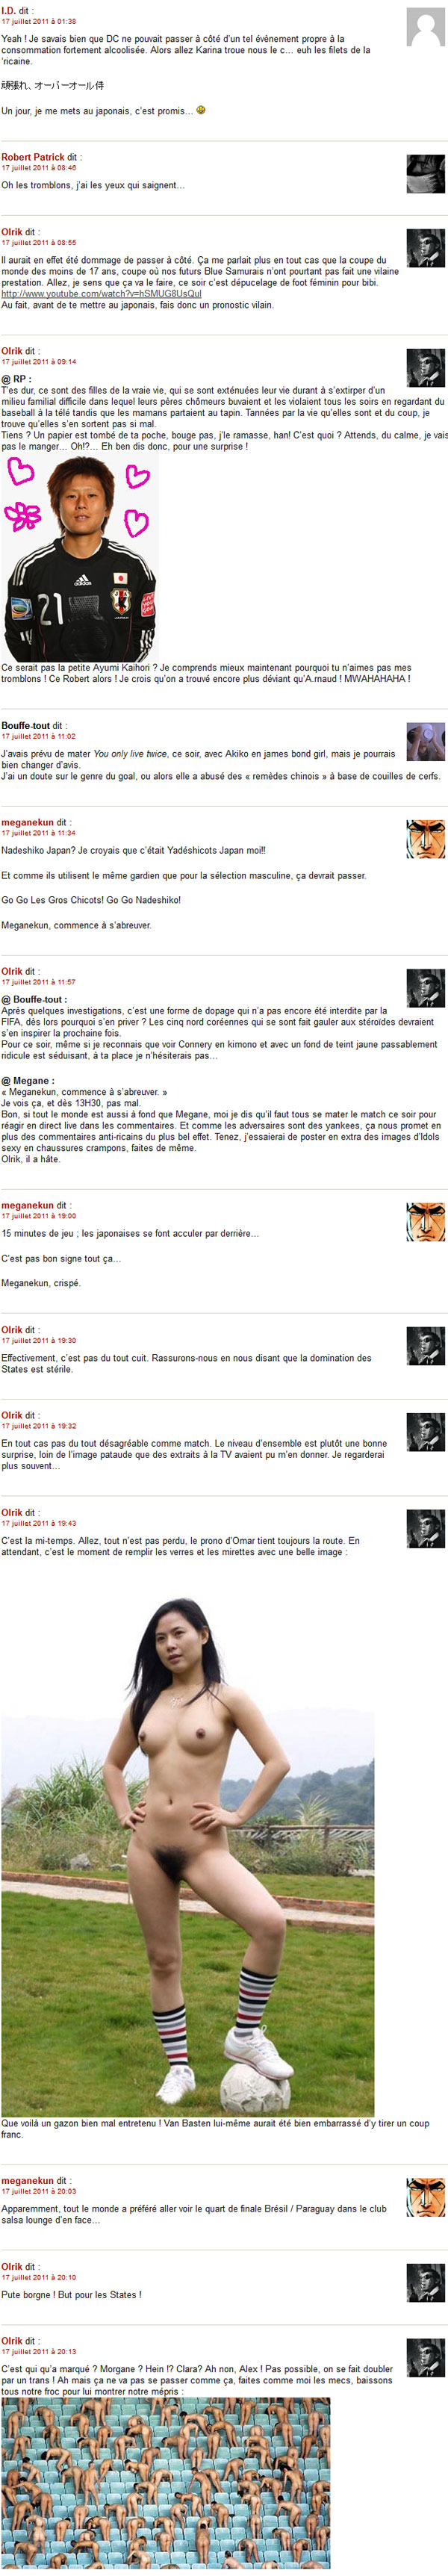 nadeshiko-commentaires1